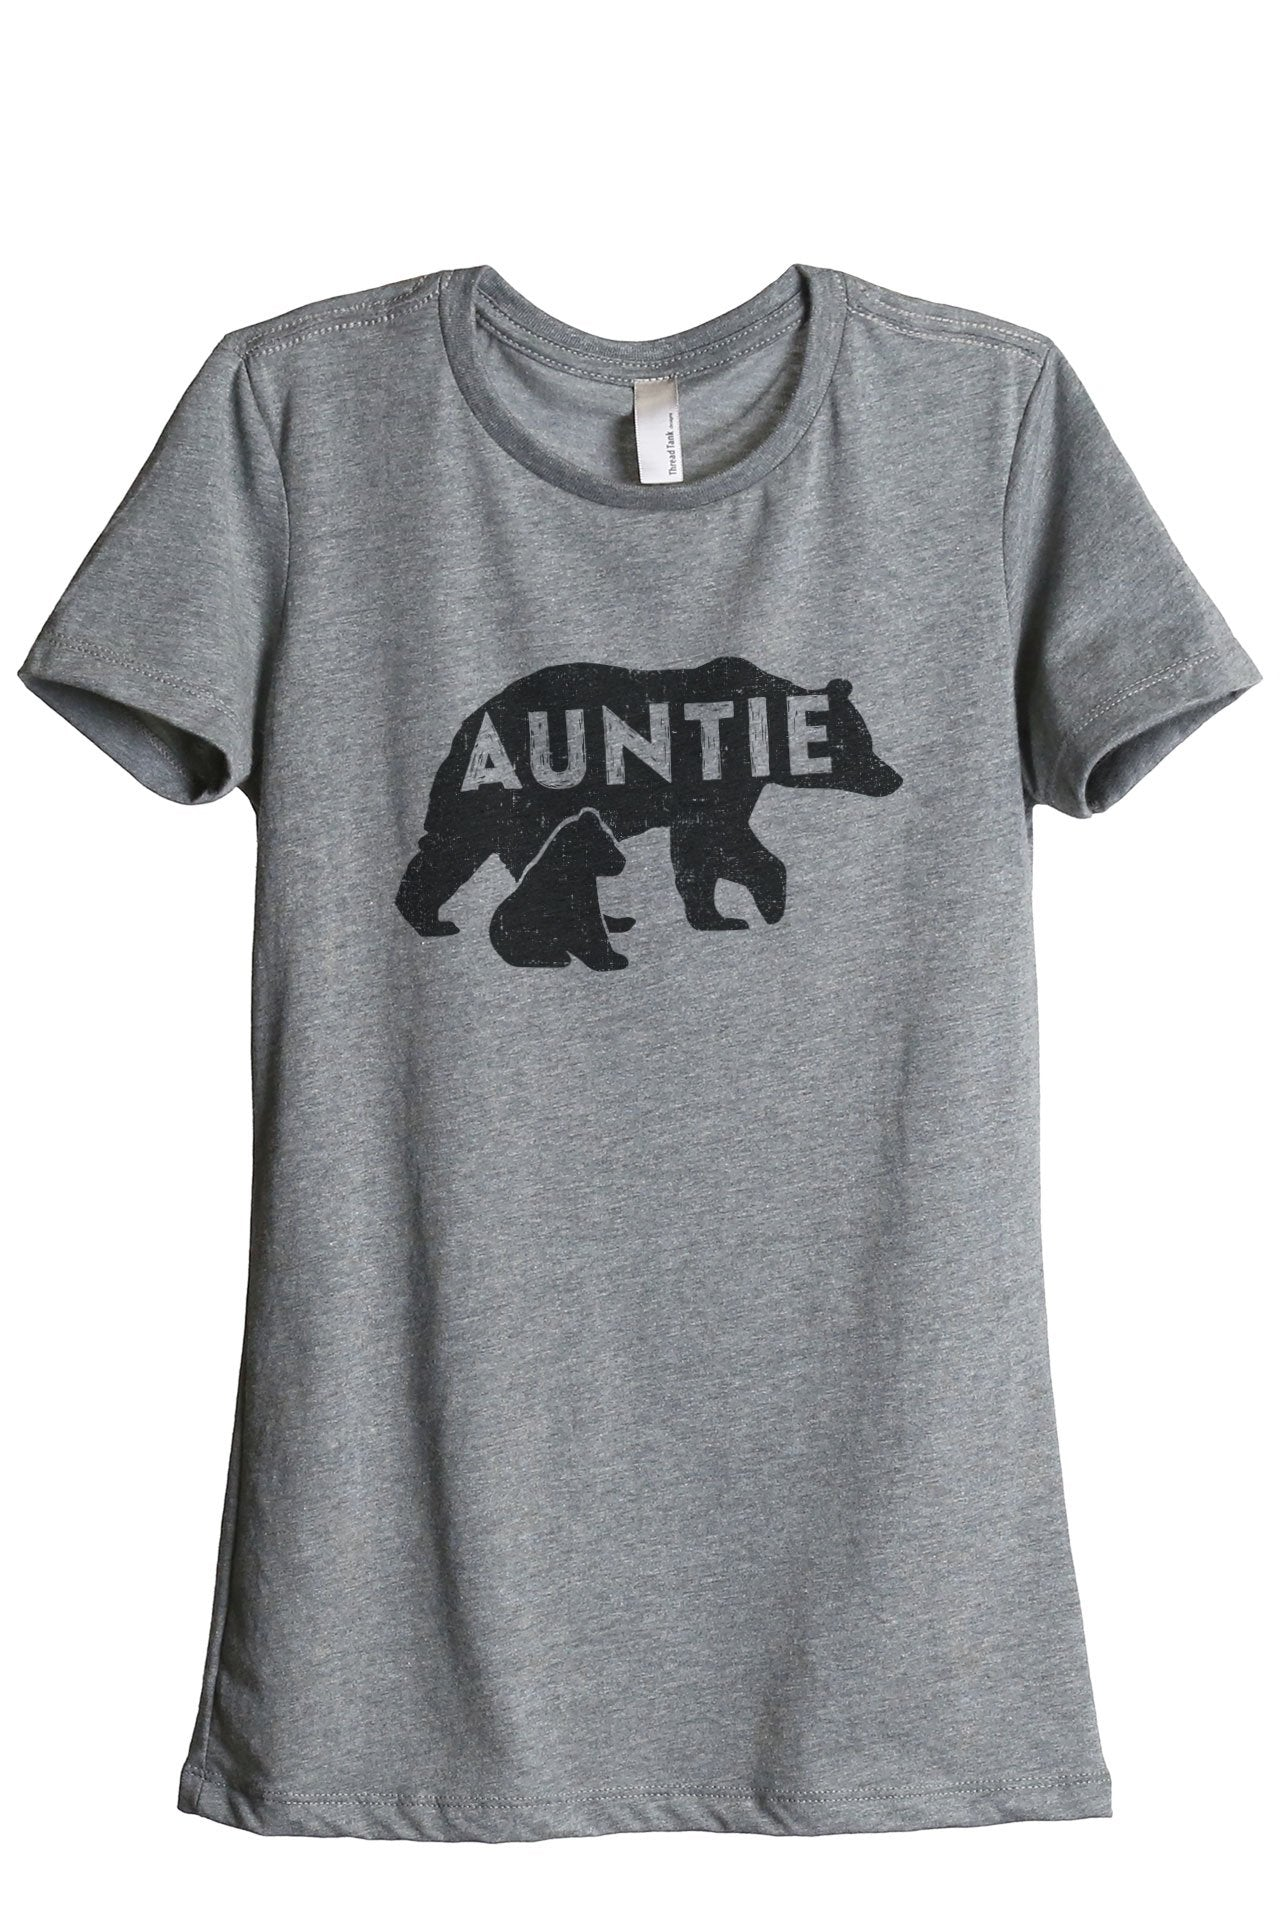 Auntie Bear - Thread Tank | Stories You Can Wear | T-Shirts, Tank Tops and Sweatshirts